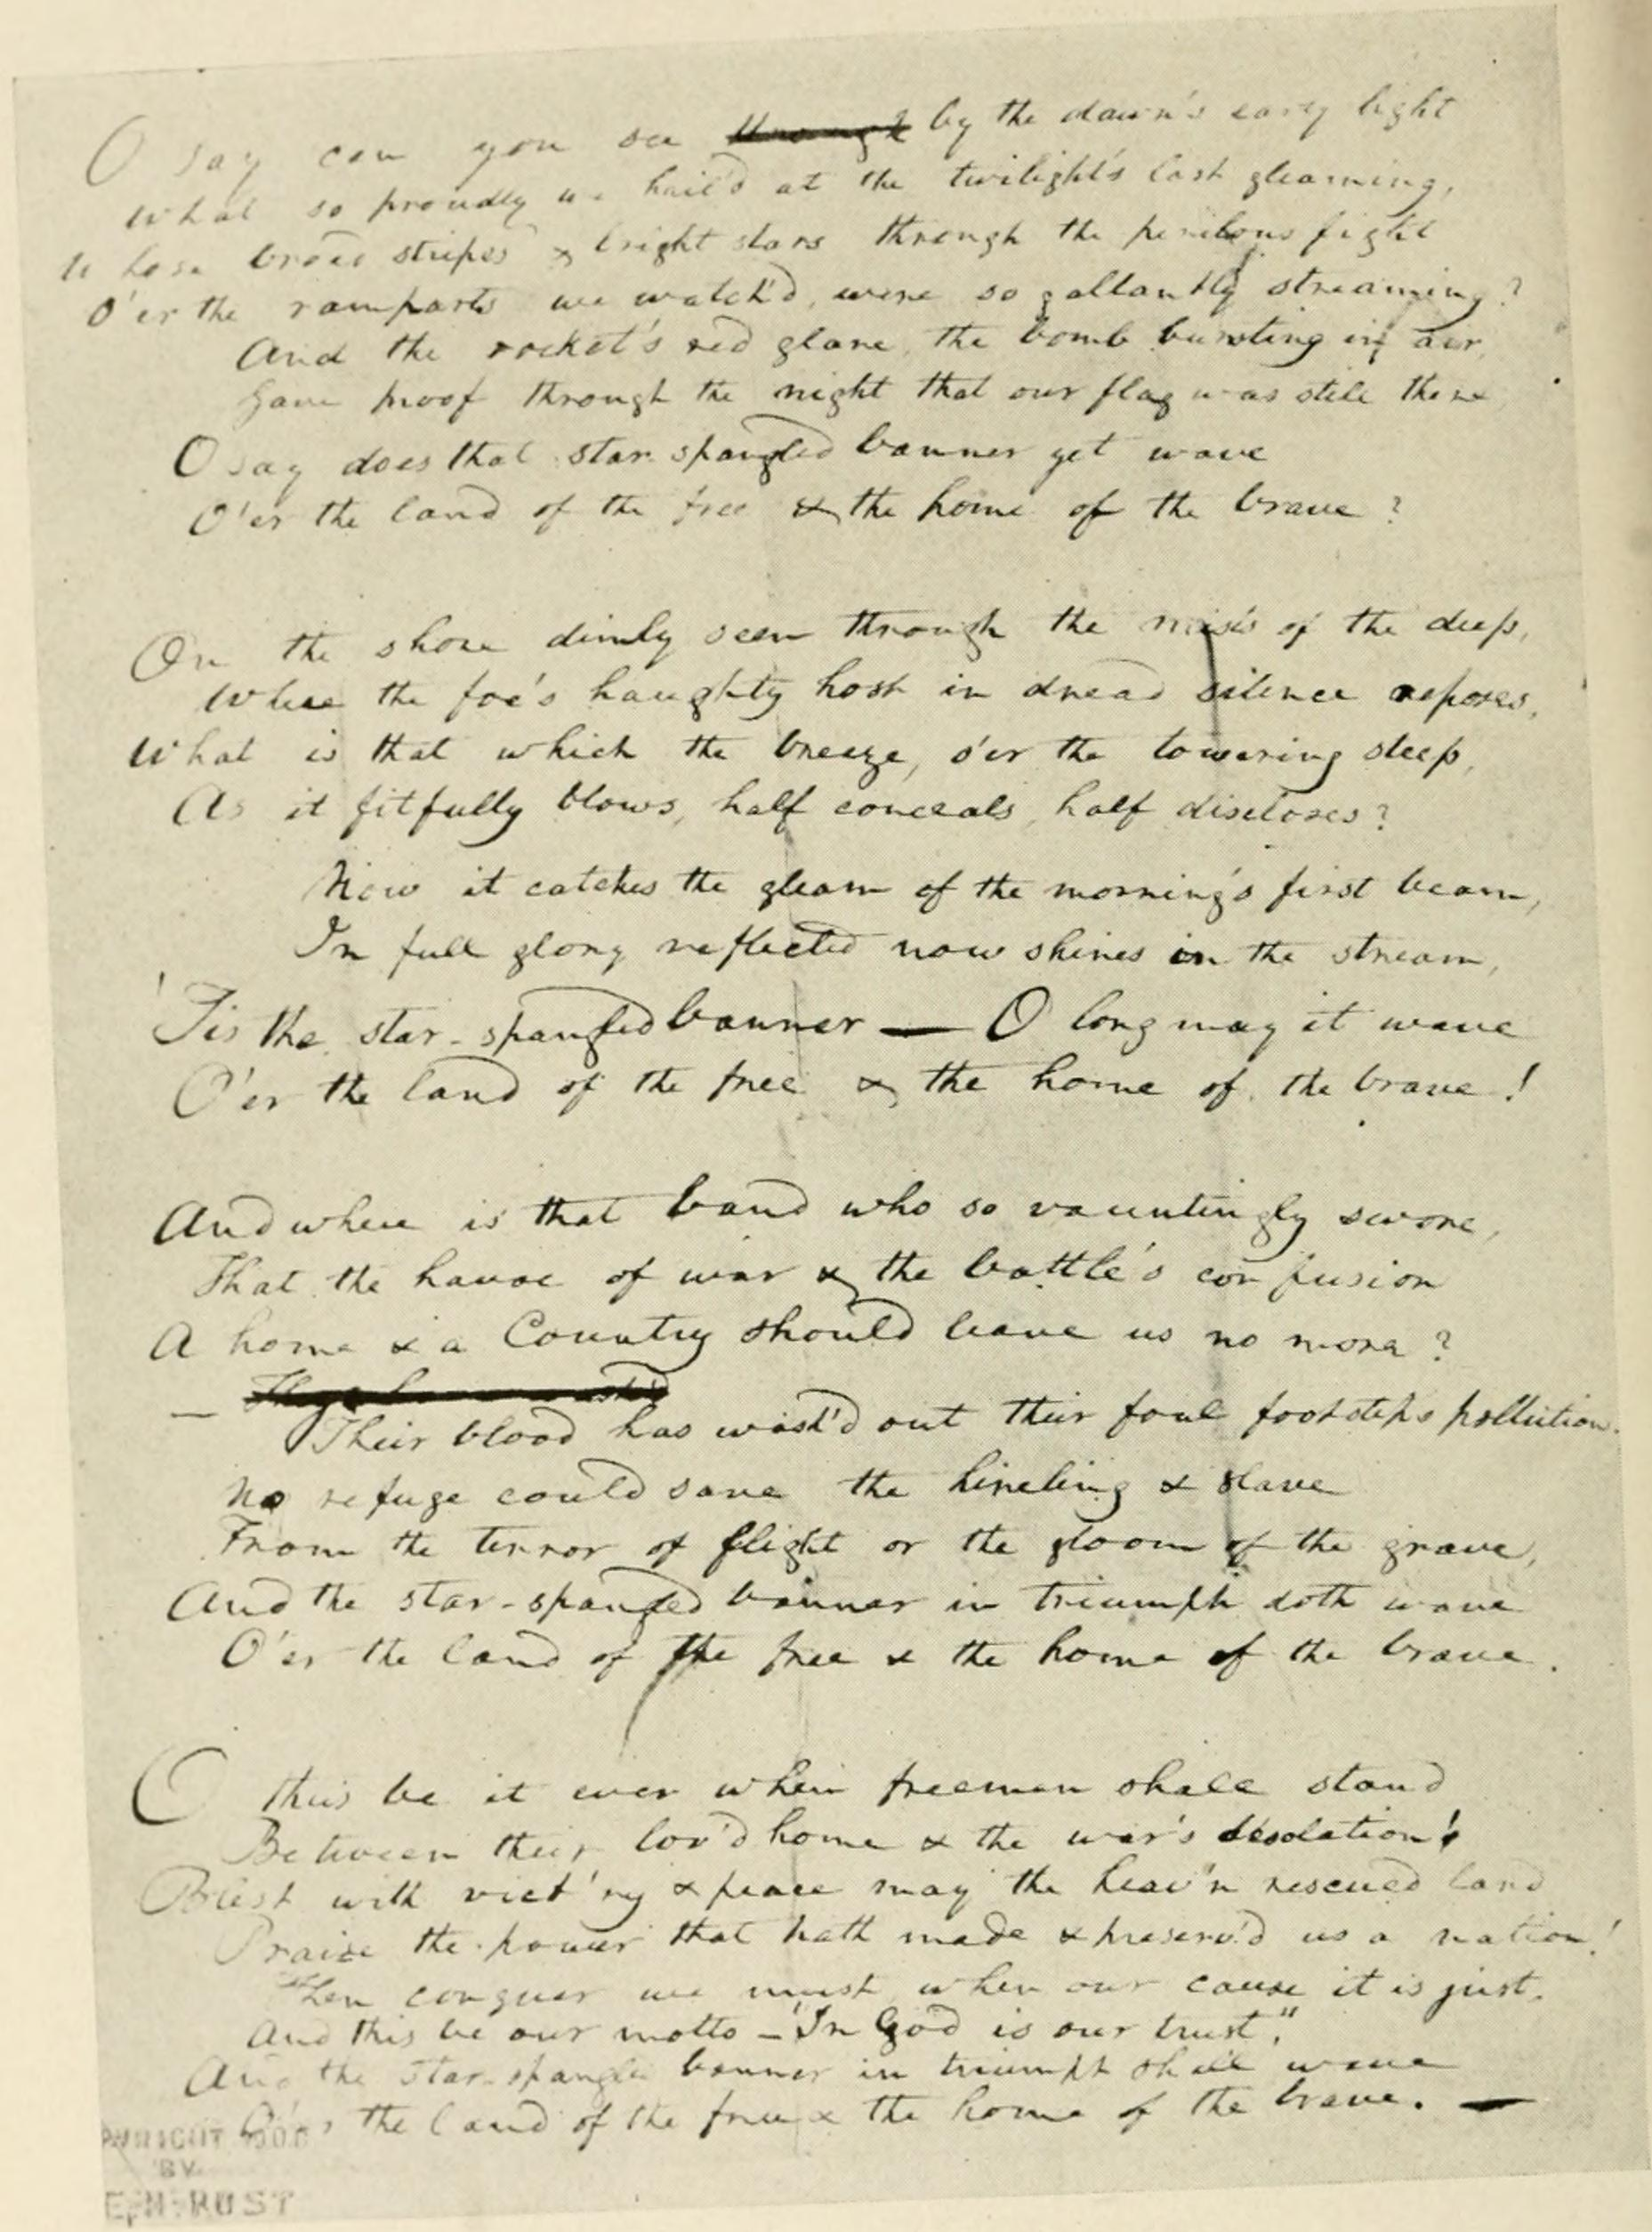 Francis Scott Key's original manuscript copy of his